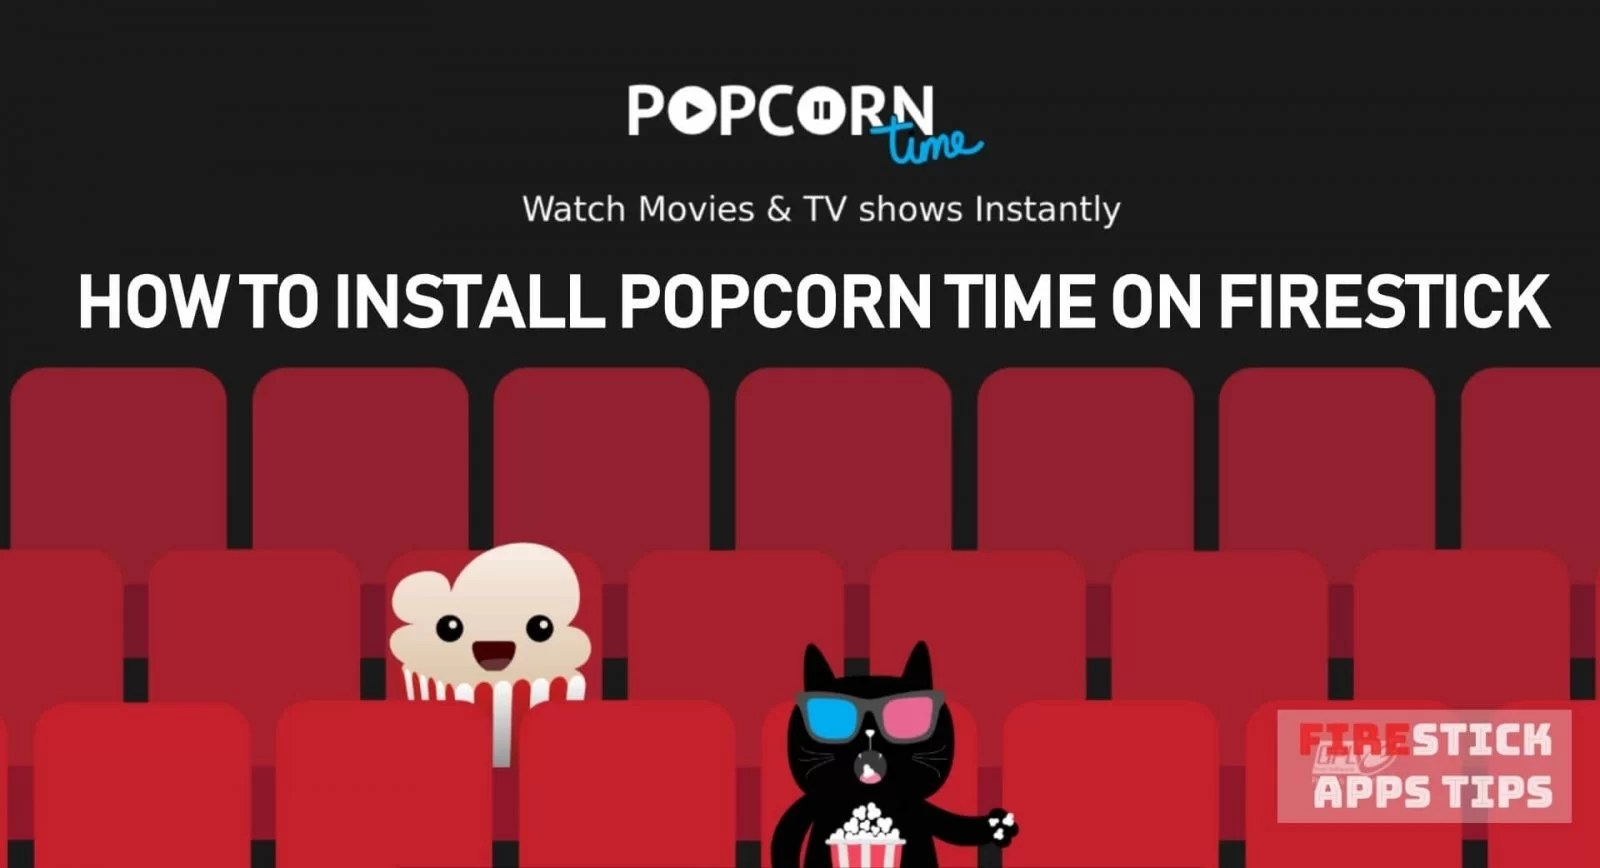 get torrent file from popcorn time